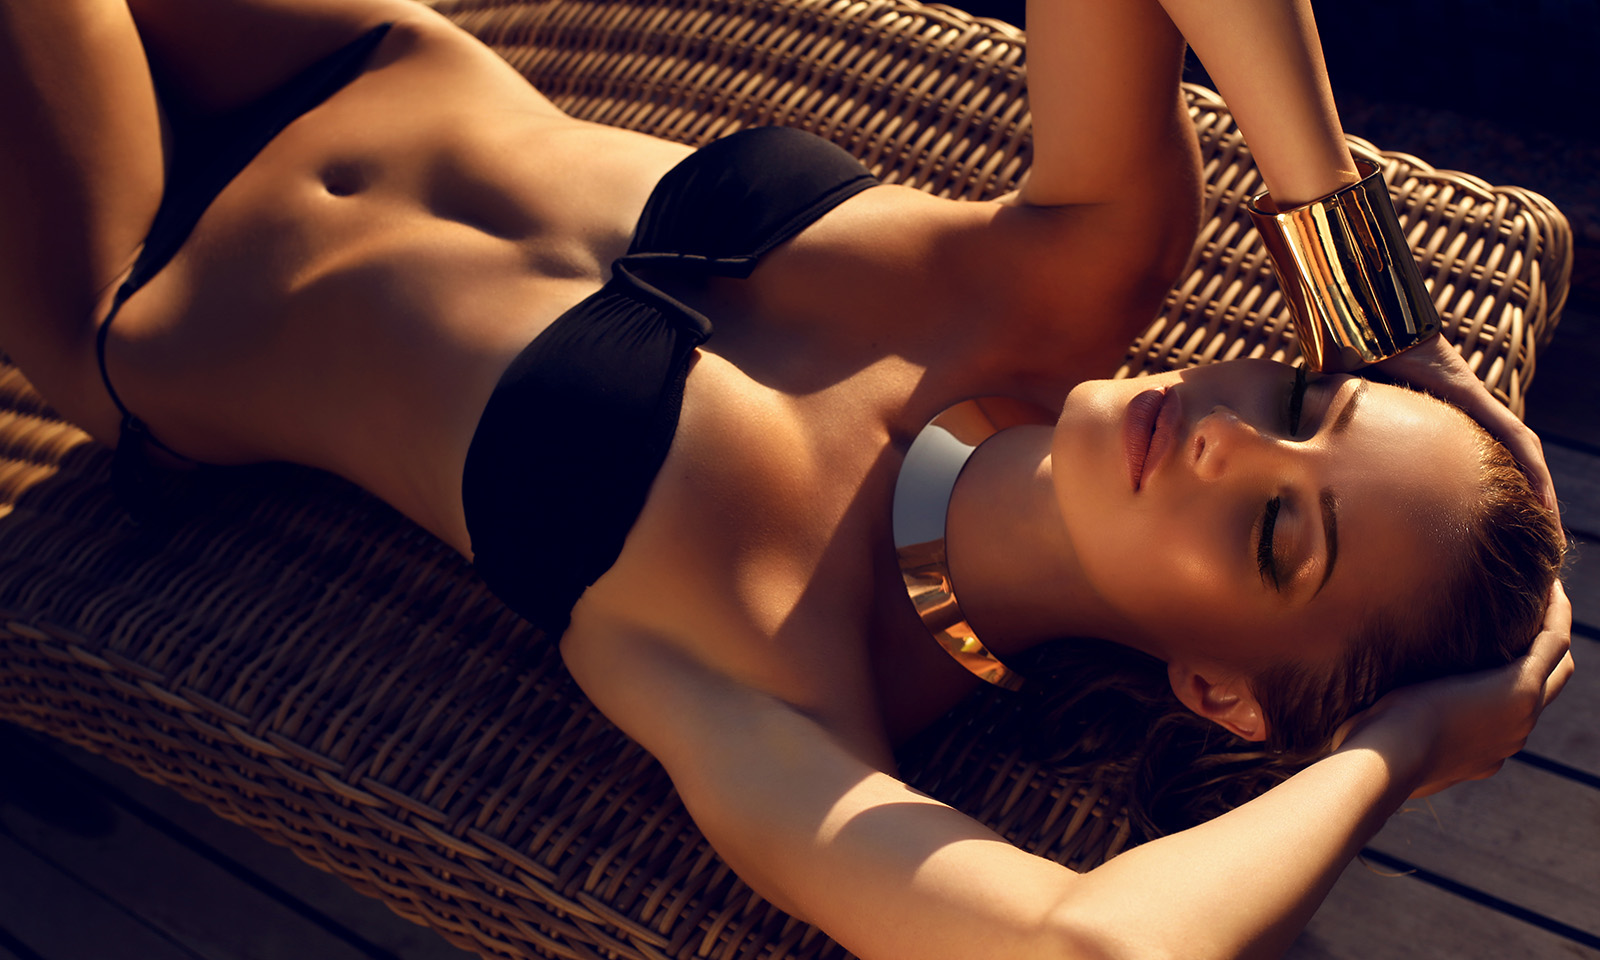 story-of-smooth-skin-and-lasers-woman-in-bikini-with-great-skin